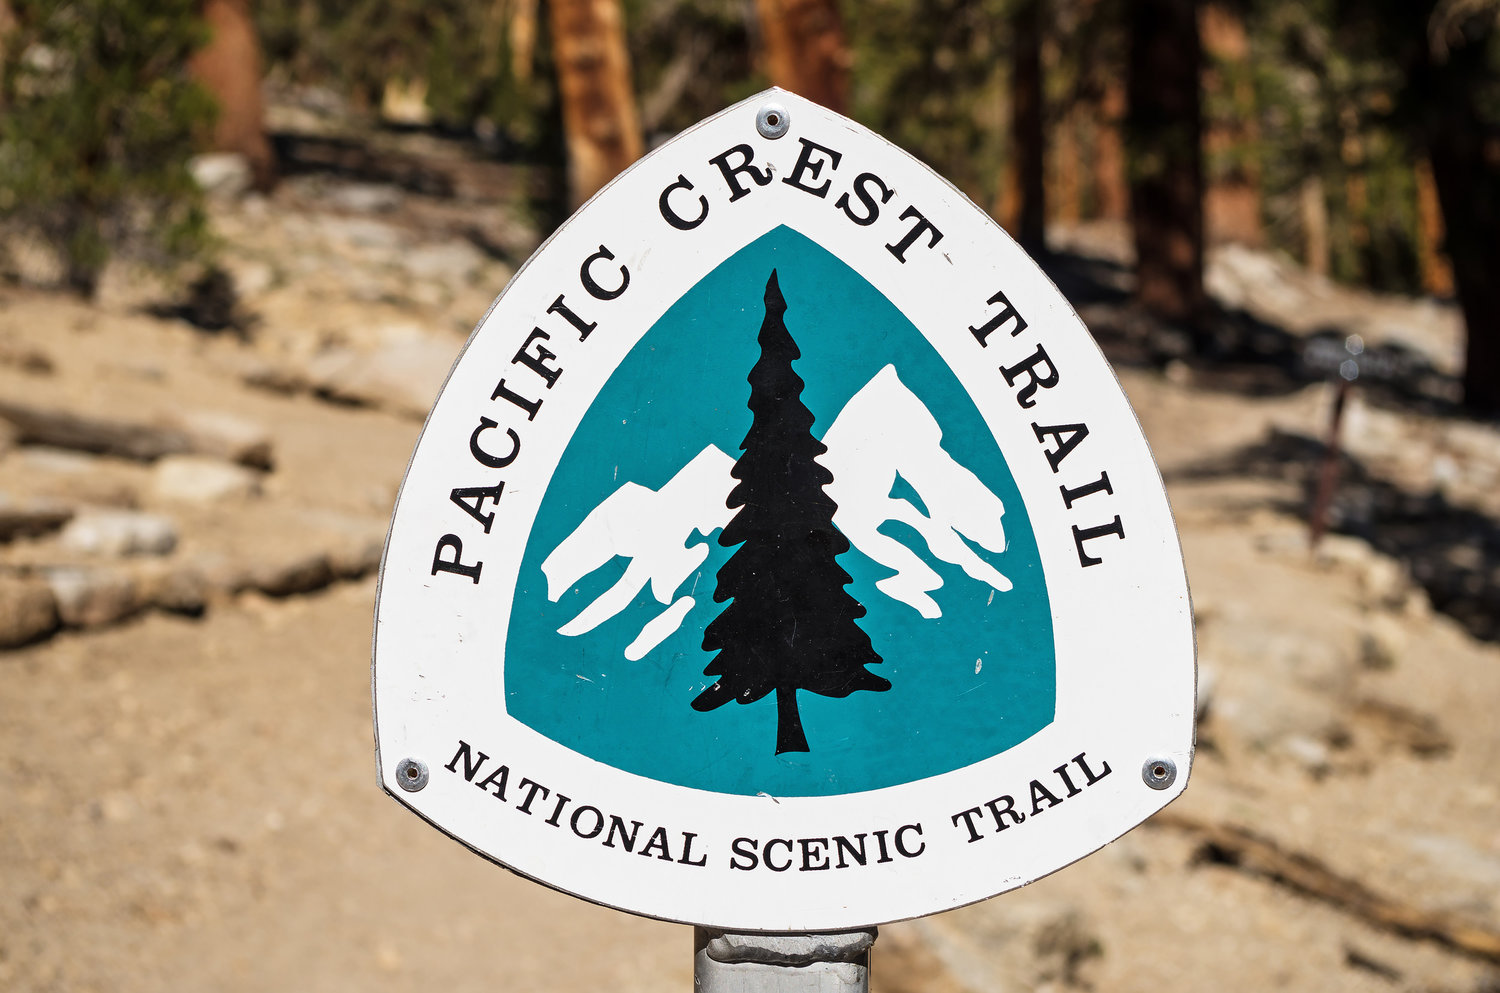 So, I'm hiking the Pacific Crest Trail this summer | Isko ... Satellite Map Of Pct on map of palm, map of pe, map of cdt, map of northern california and oregon, map of pen, map of pa, map of san, map of delaware, map of pcc, map of md, map of asia, map of ca, map of ai, map of ms, map of pcb, map of sun, map of msp, map of nec, map of pei, map of pch,